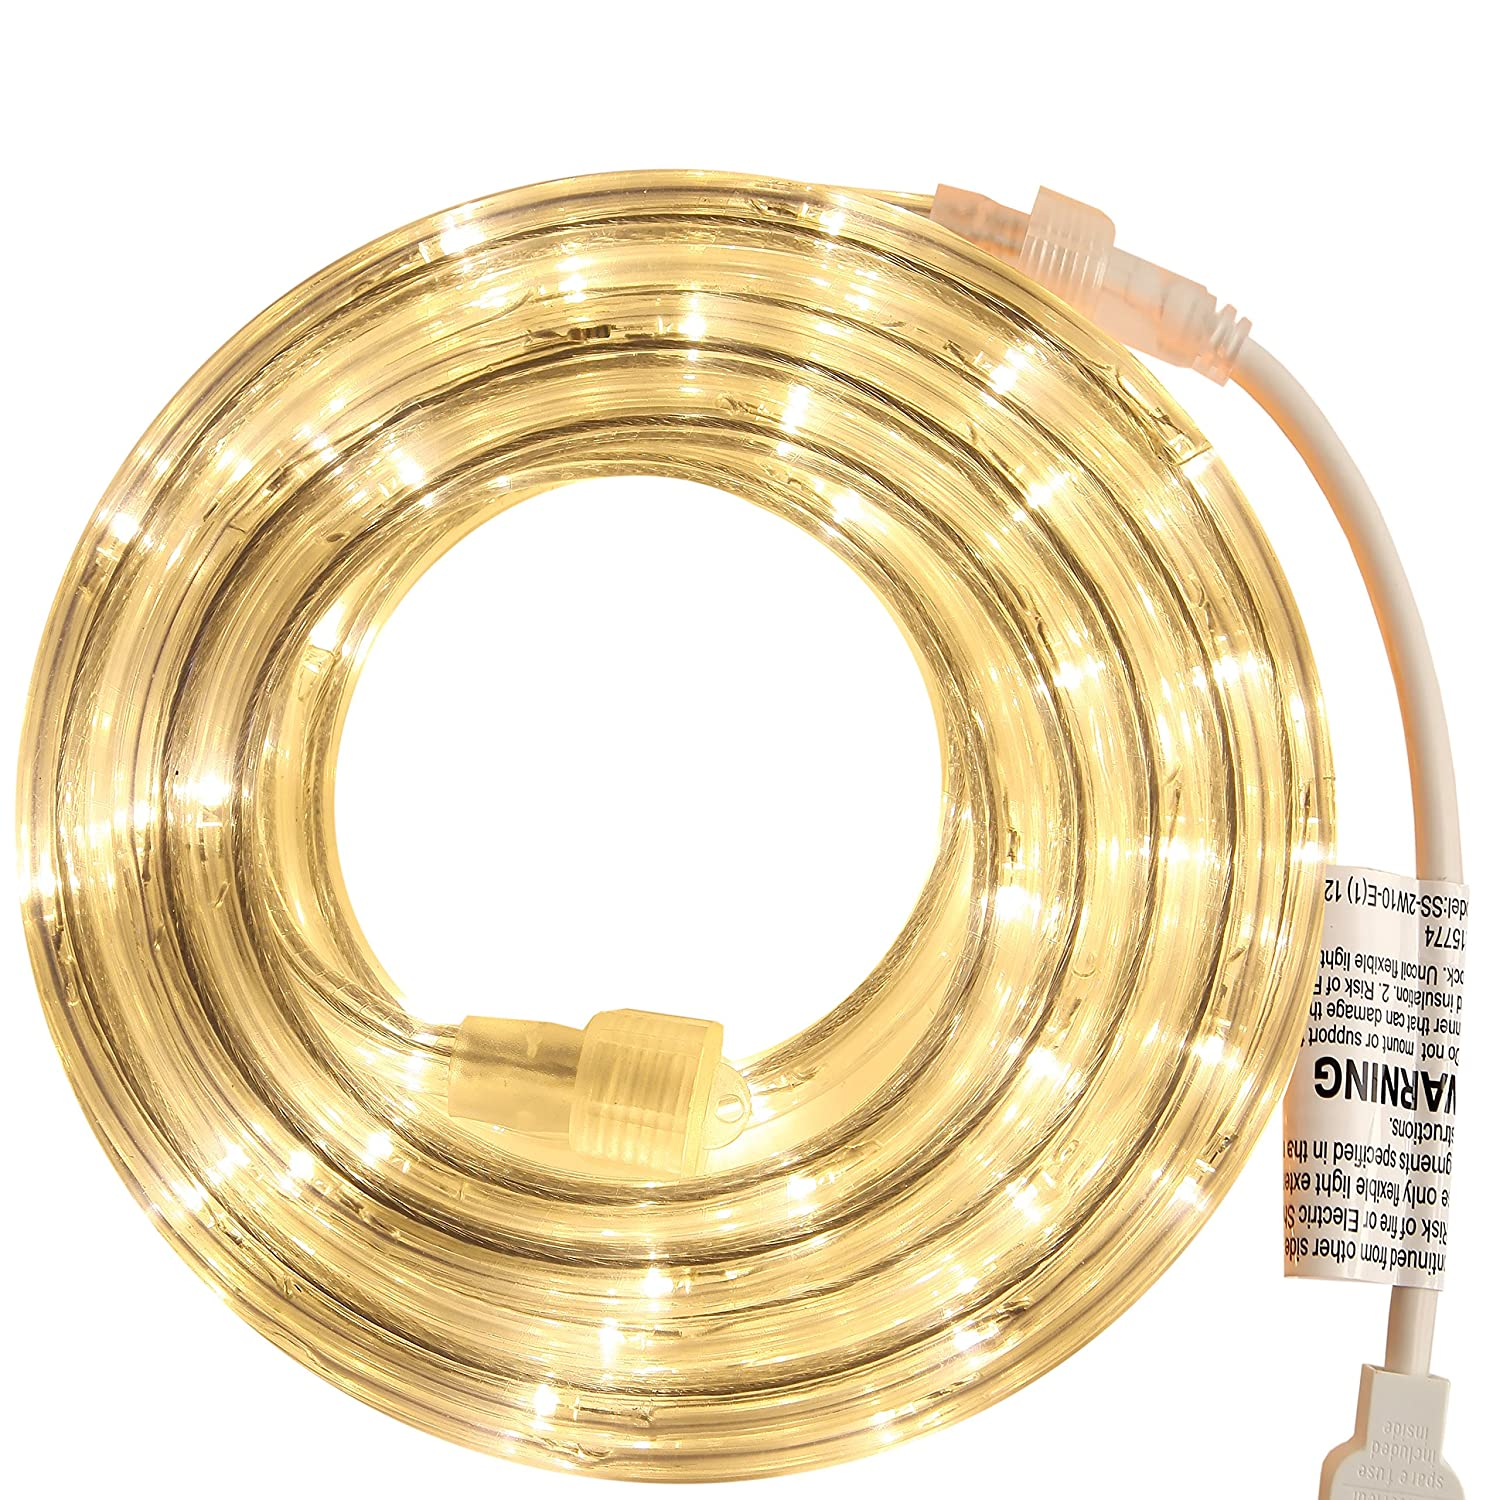 PERSIK Rope Light for Indoor and Outdoor use 18 Feet 108 LED Warm White Lights